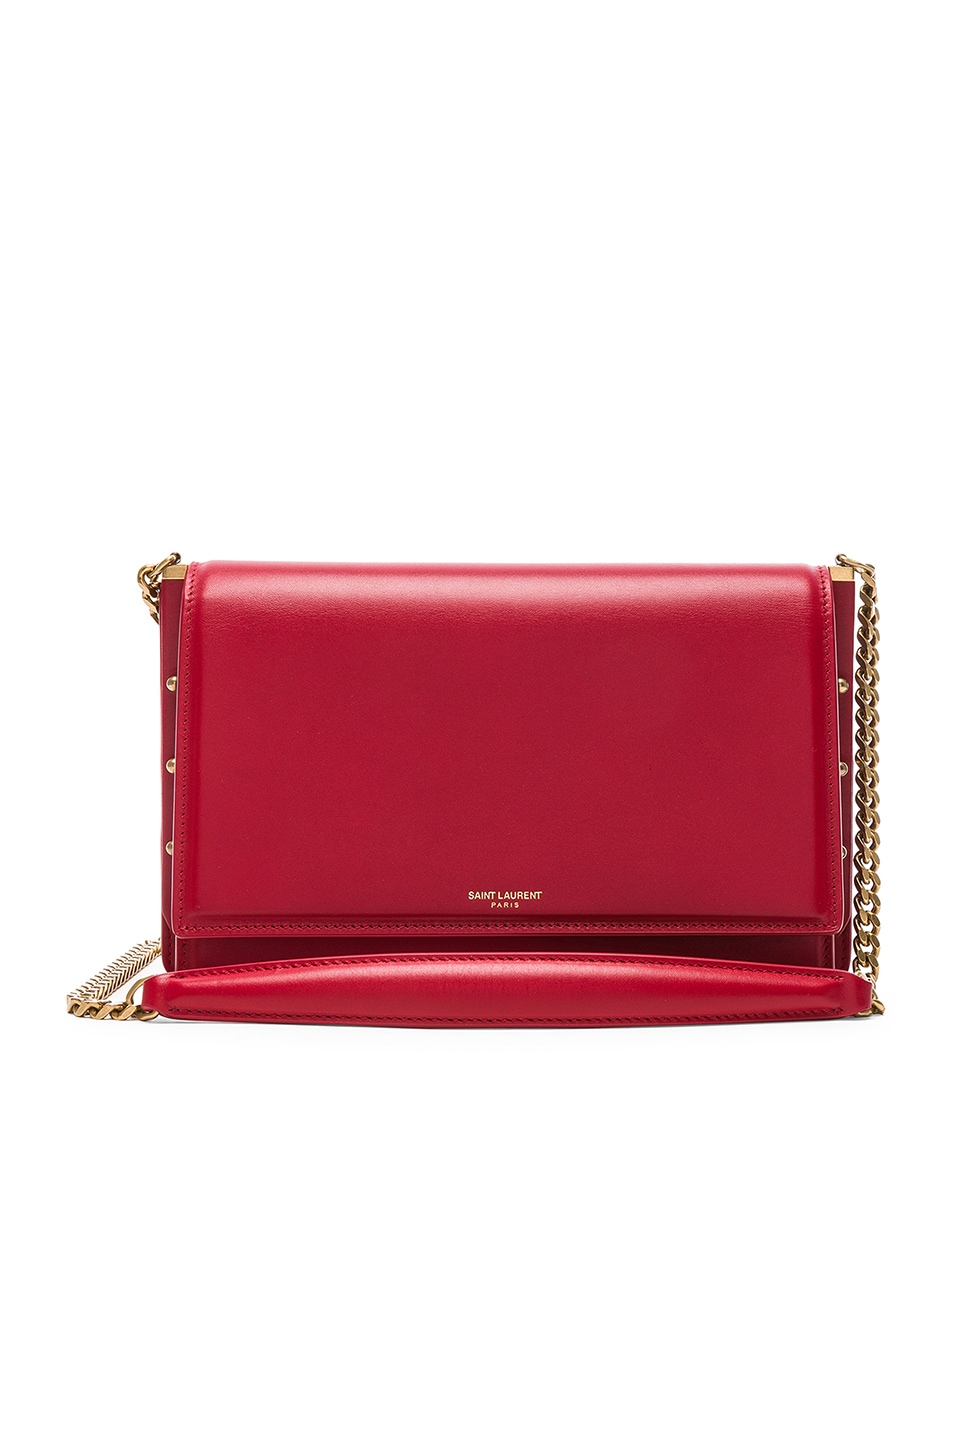 Image 1 of Saint Laurent Zoe Chain Bag in Eros Red